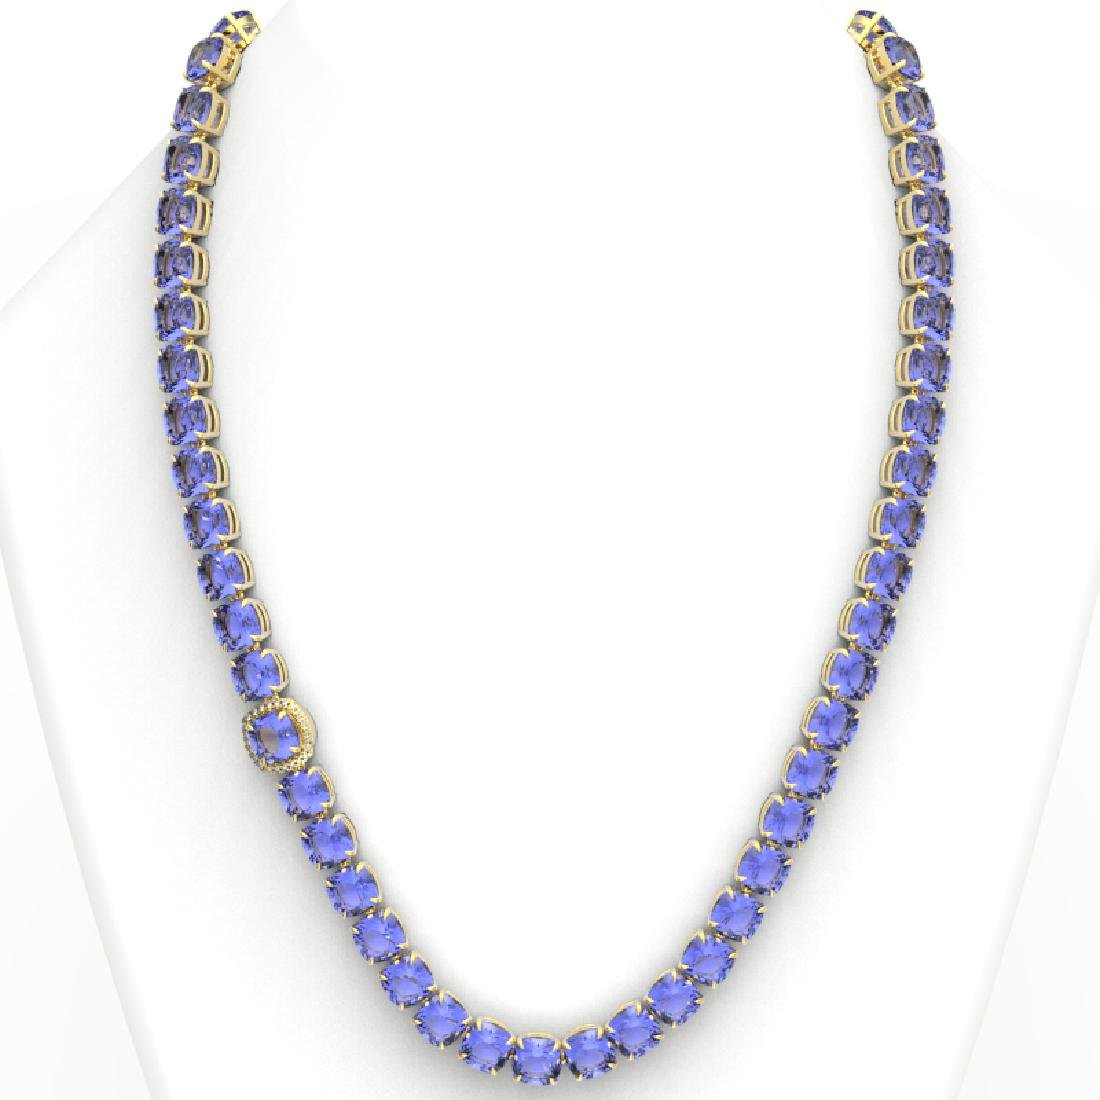 100 CTW Tanzanite & VS/SI Diamond Necklace 14K Yellow - 3